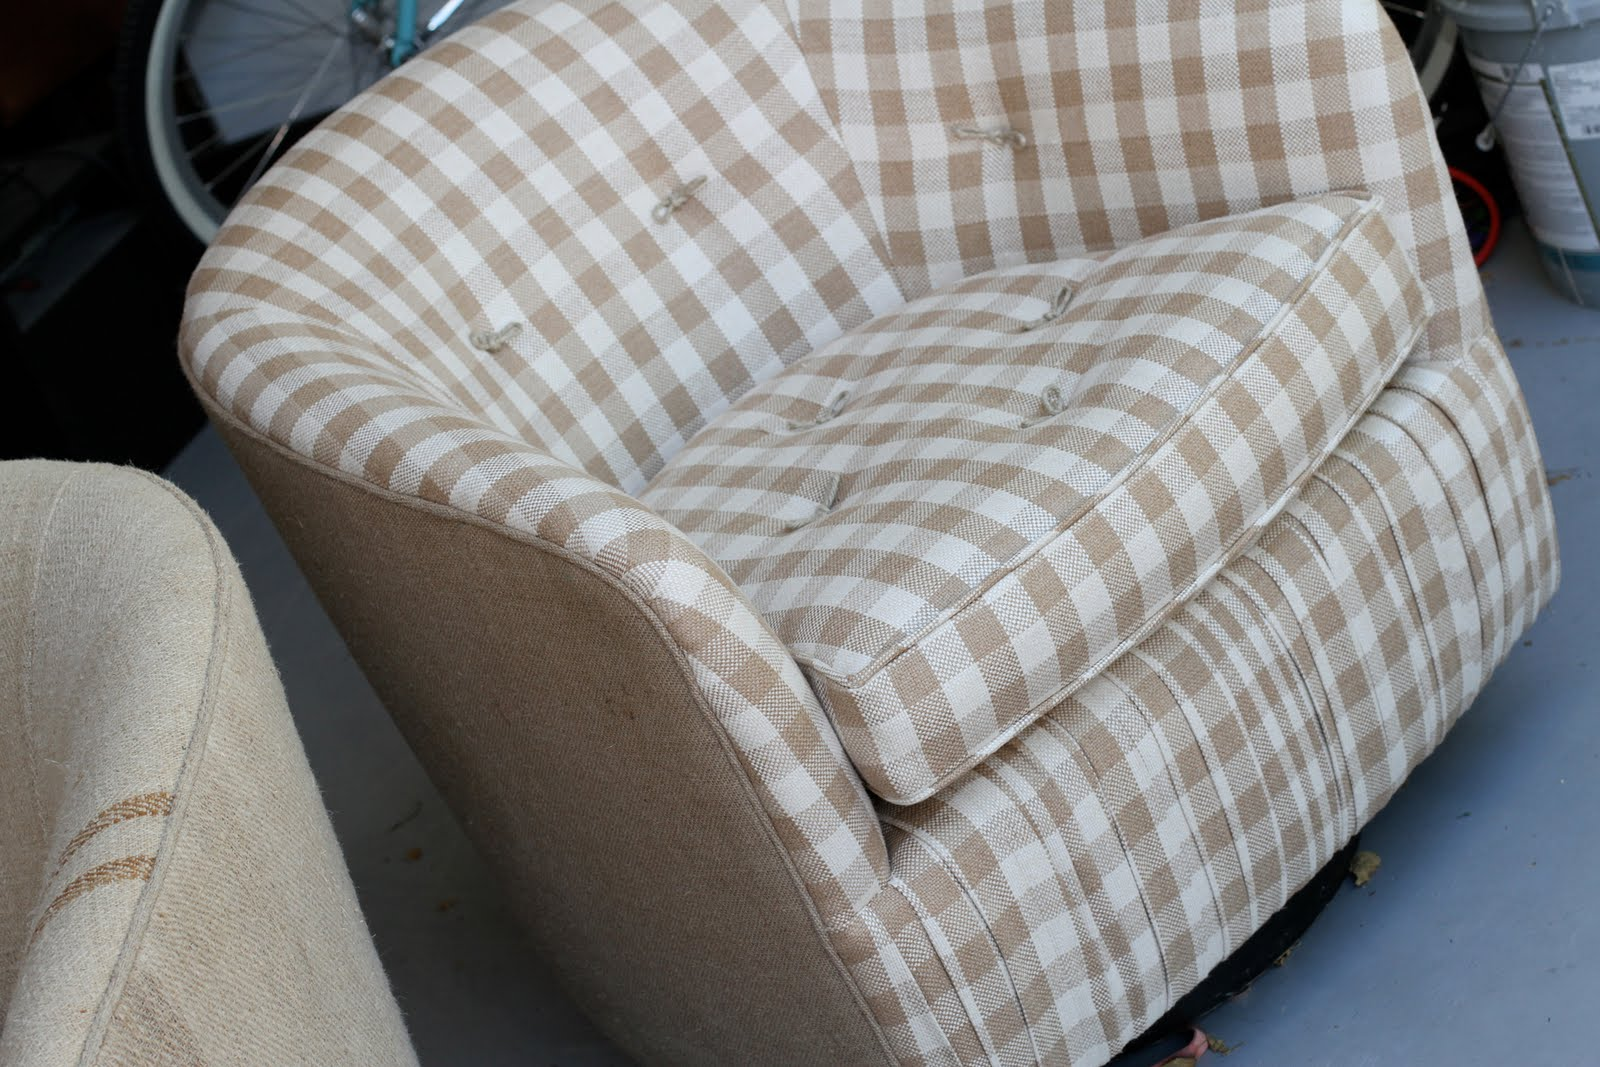 barrel swivel chair slipcover aeron height adjustment not working the willows home and garden 25 years later